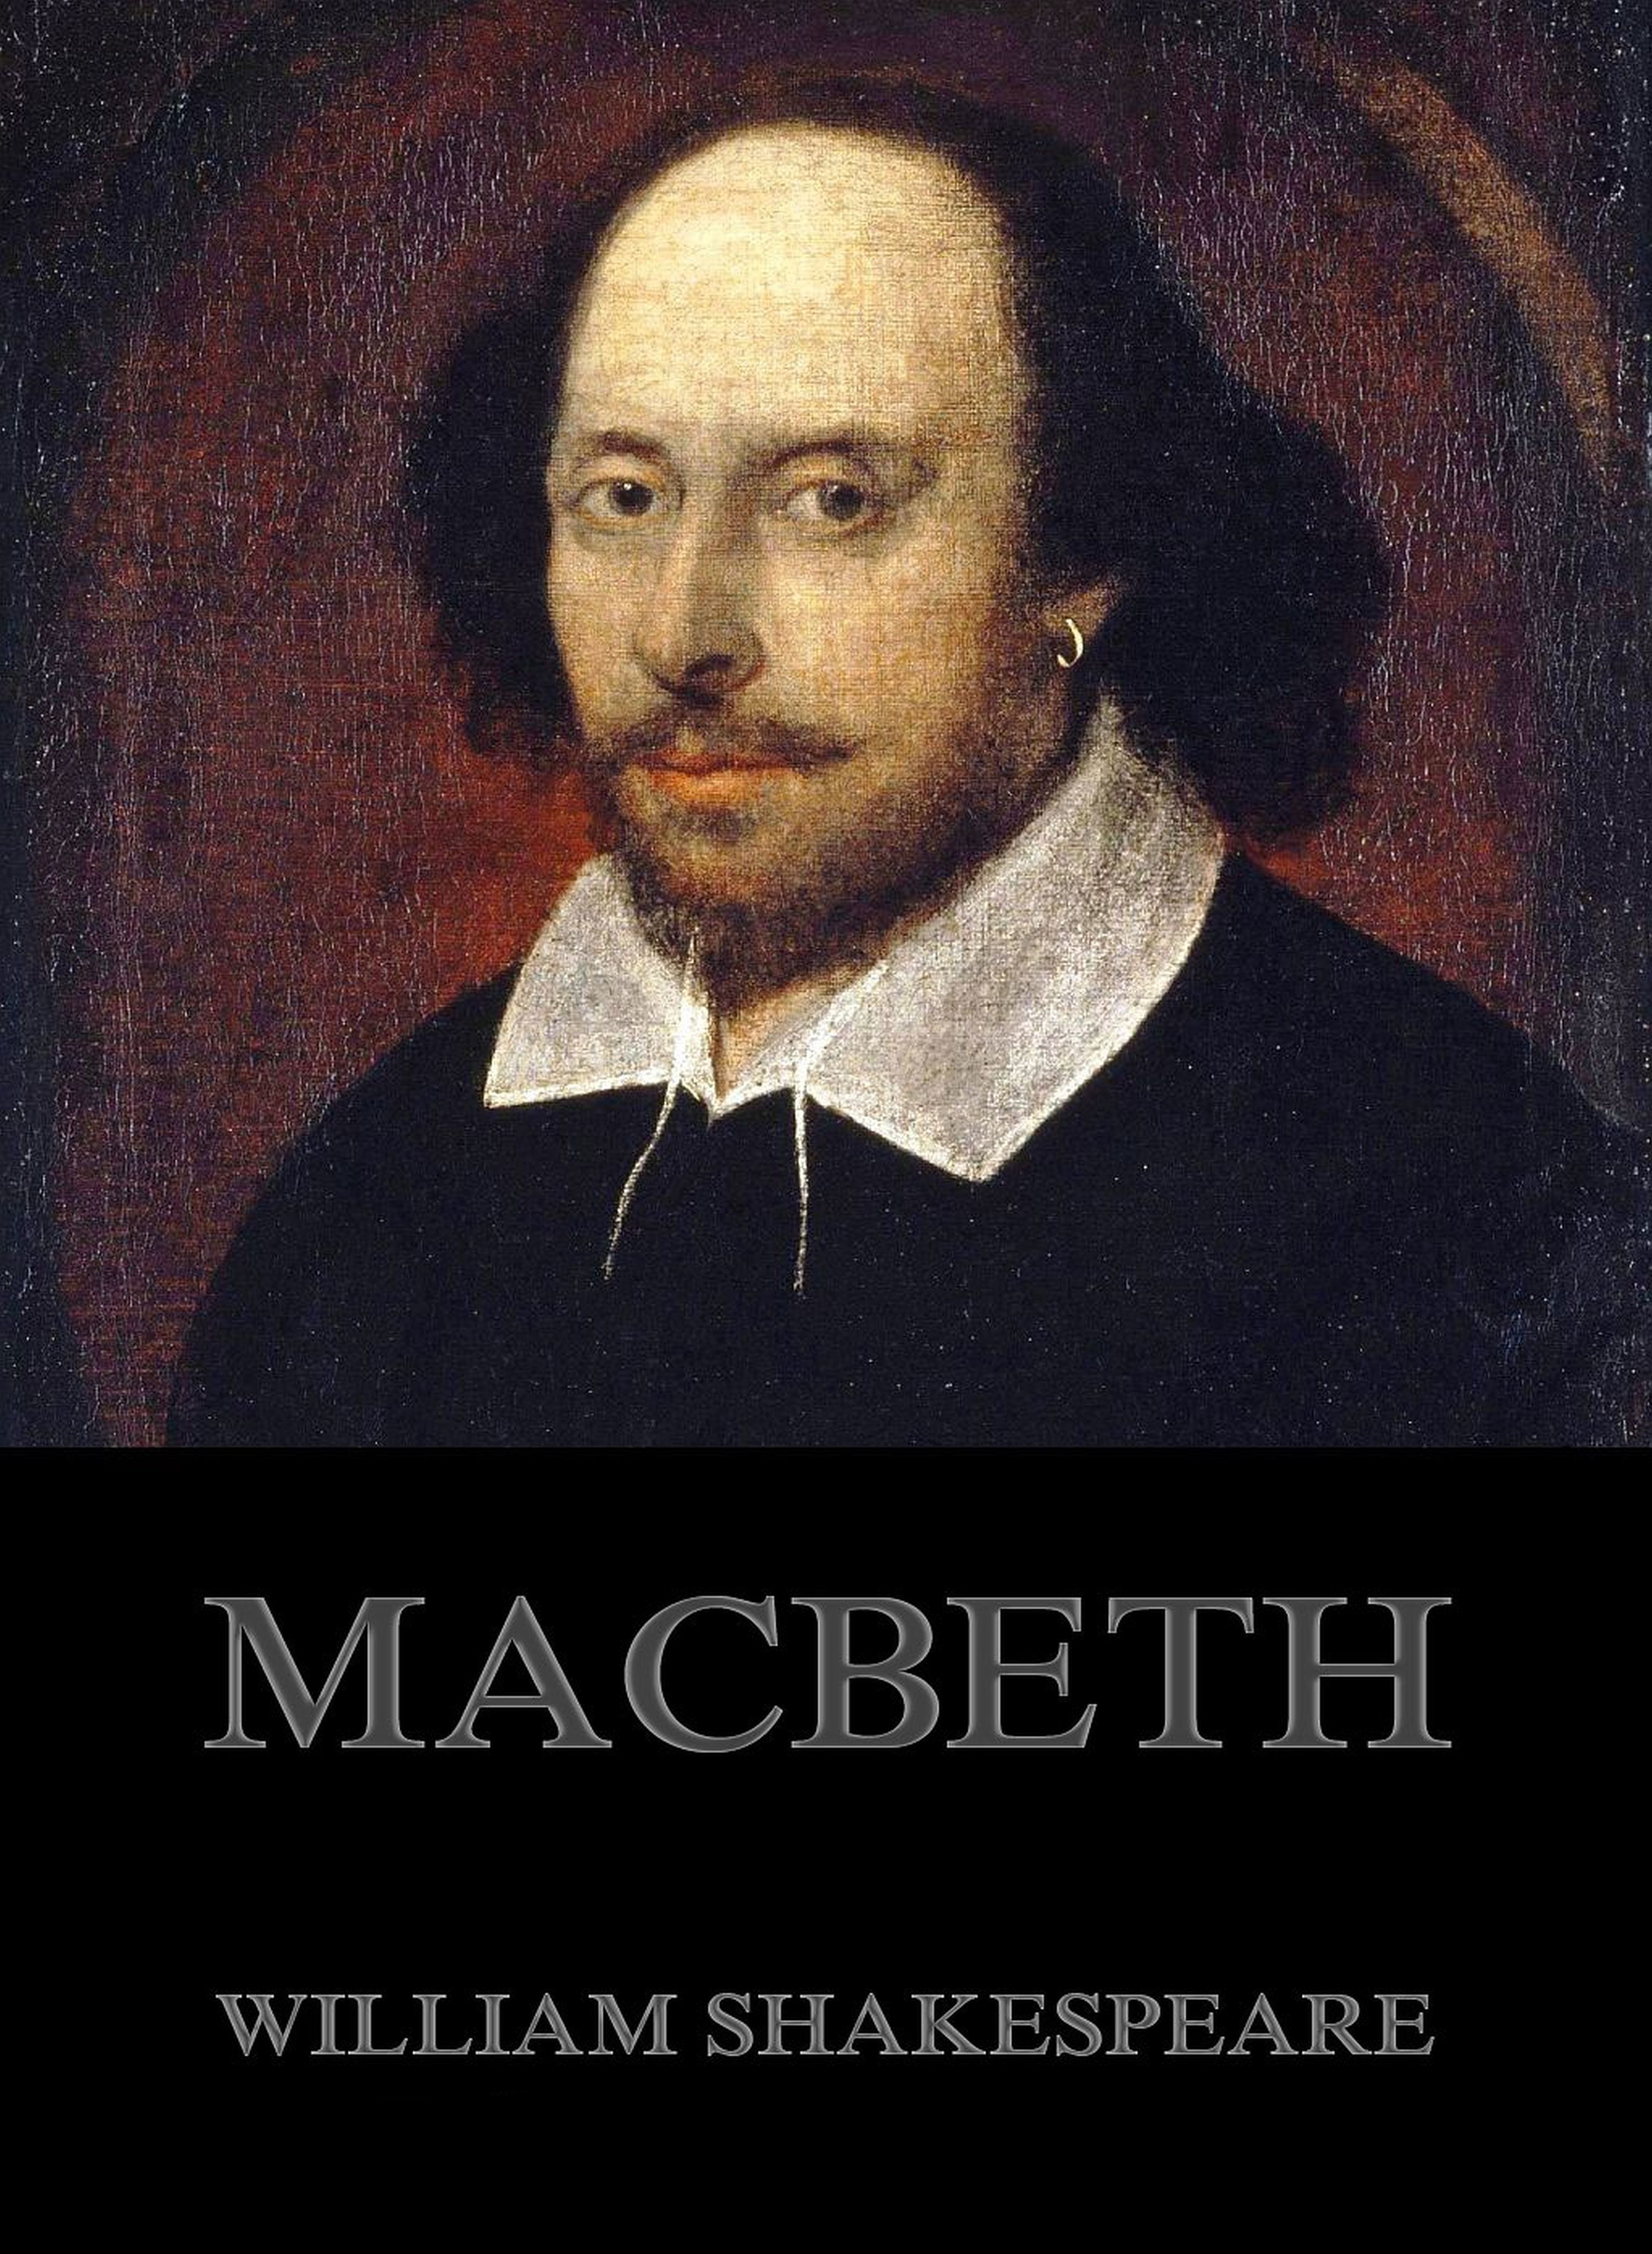 William Shakespeare Macbeth shakespeare william macbeth